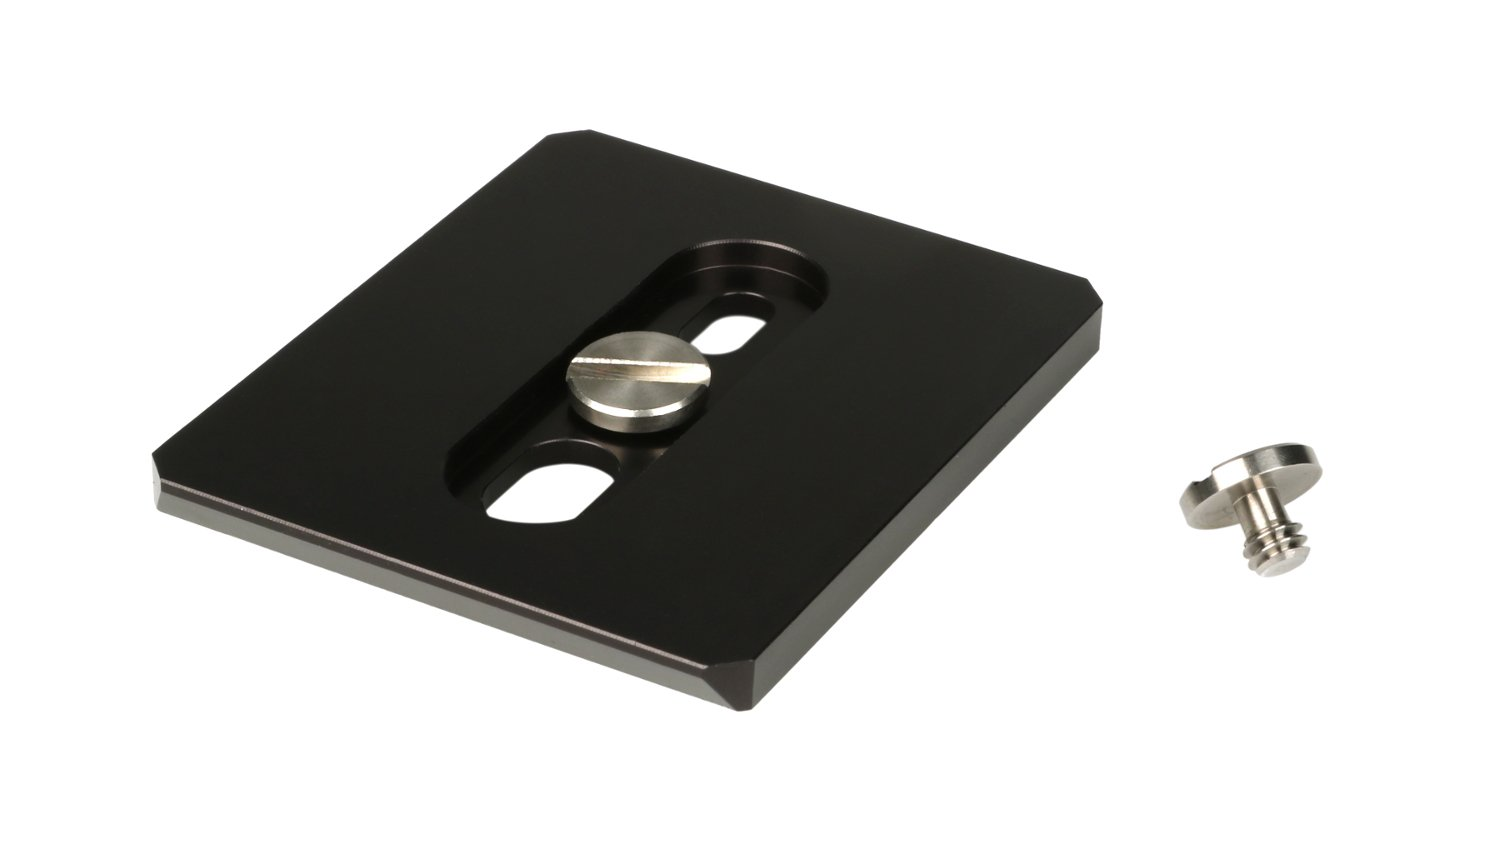 Sachtler Mounting Plate